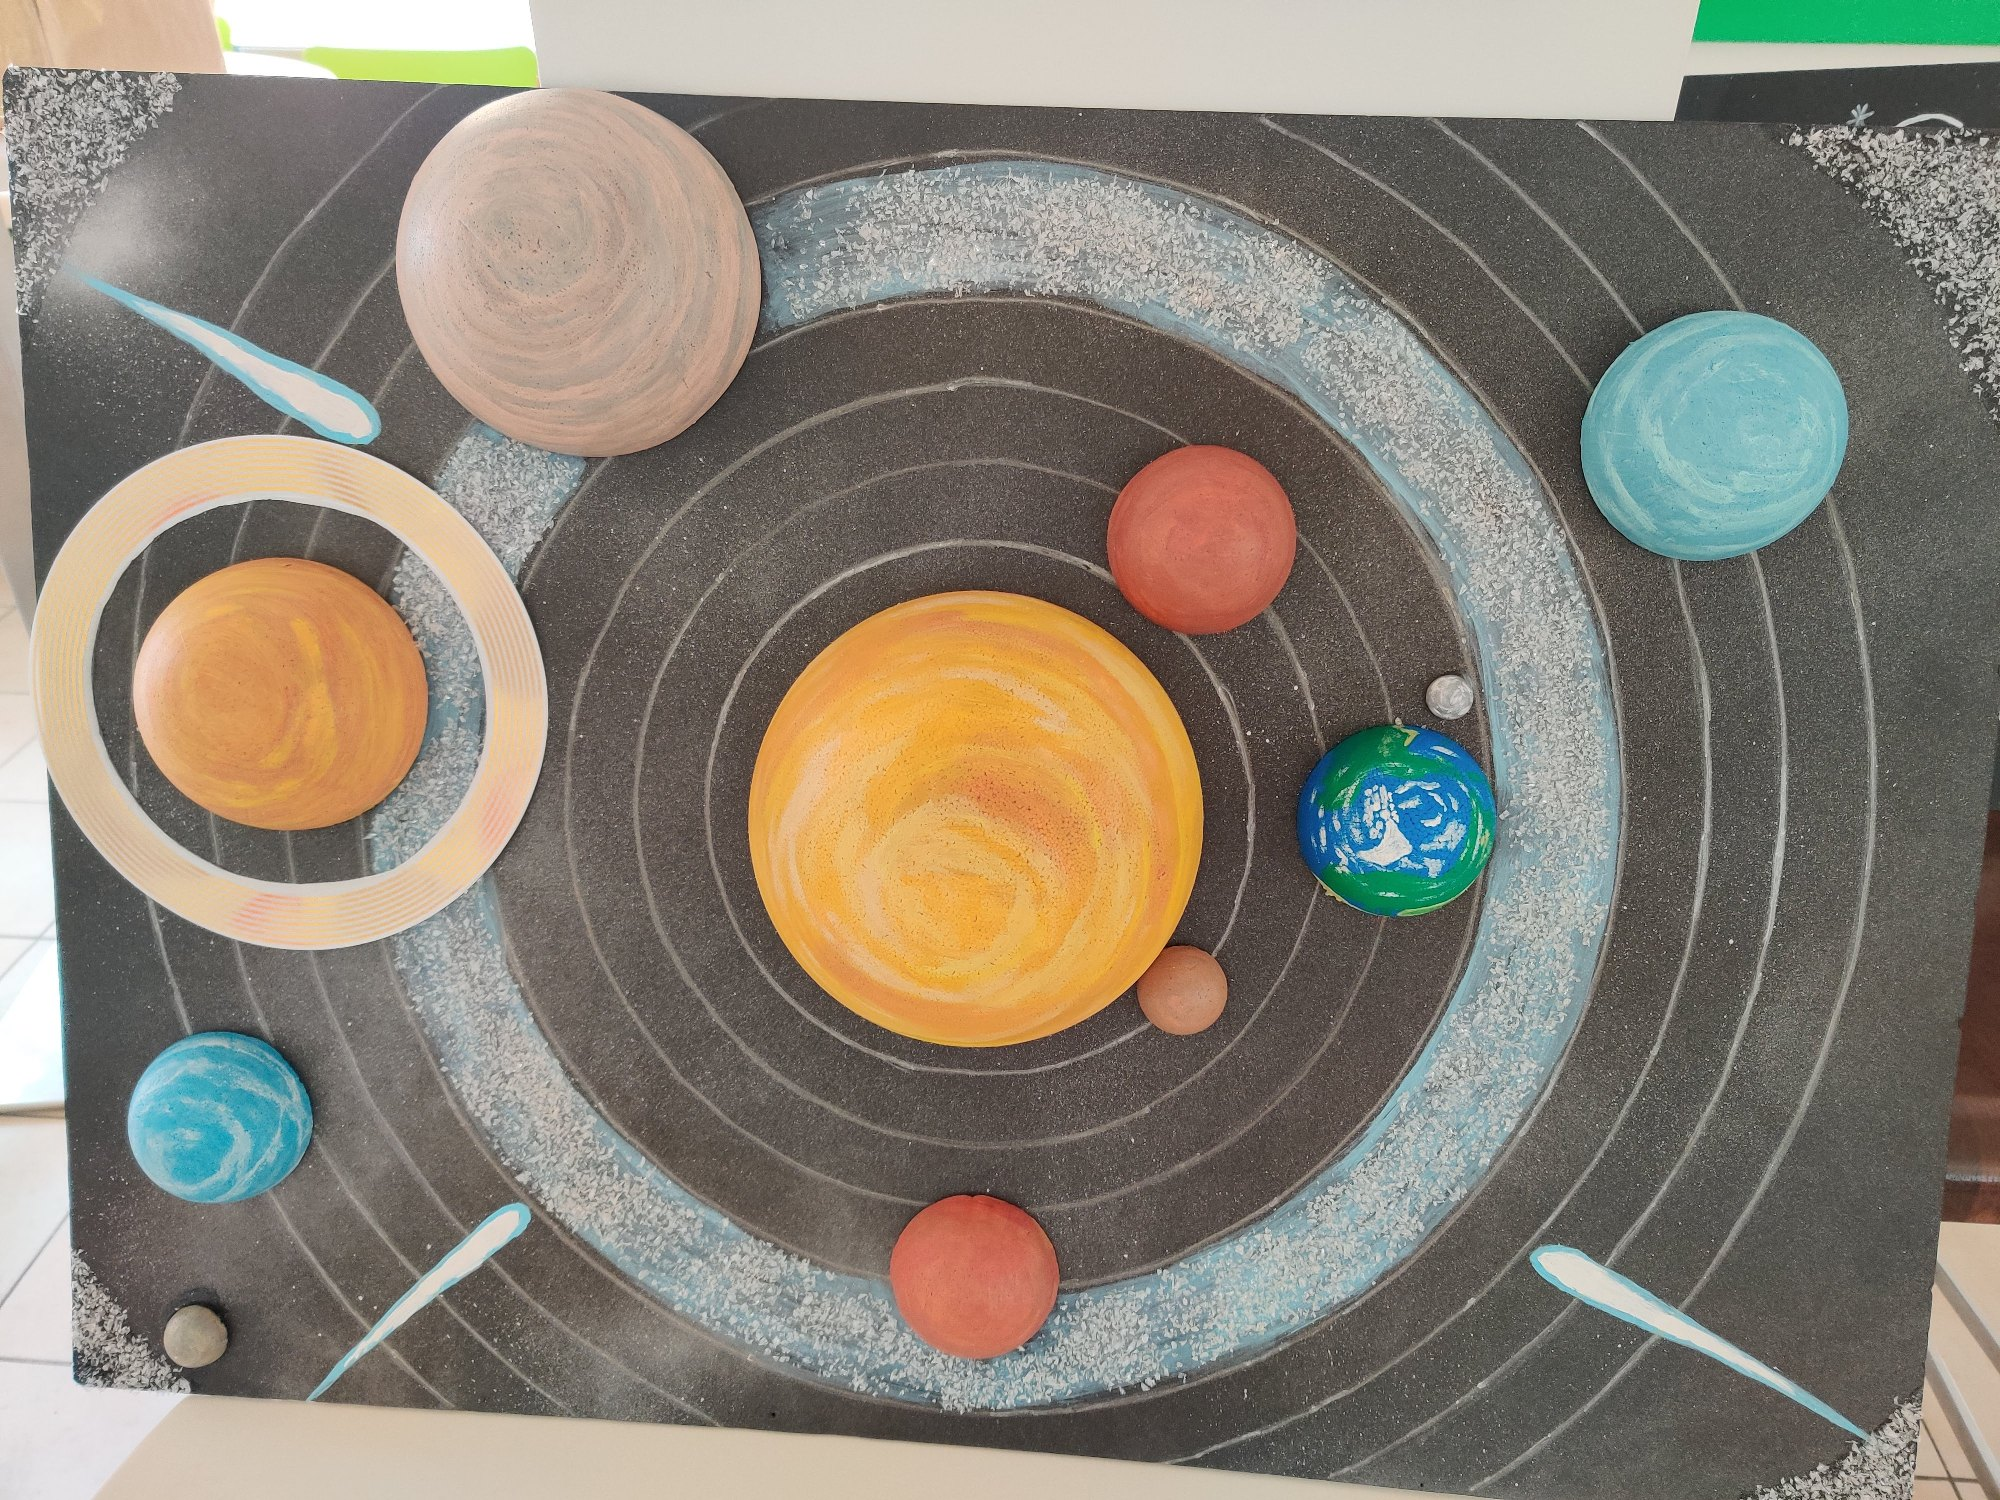 OUR SOLAR SYSTEM CREATIVE PROJECT